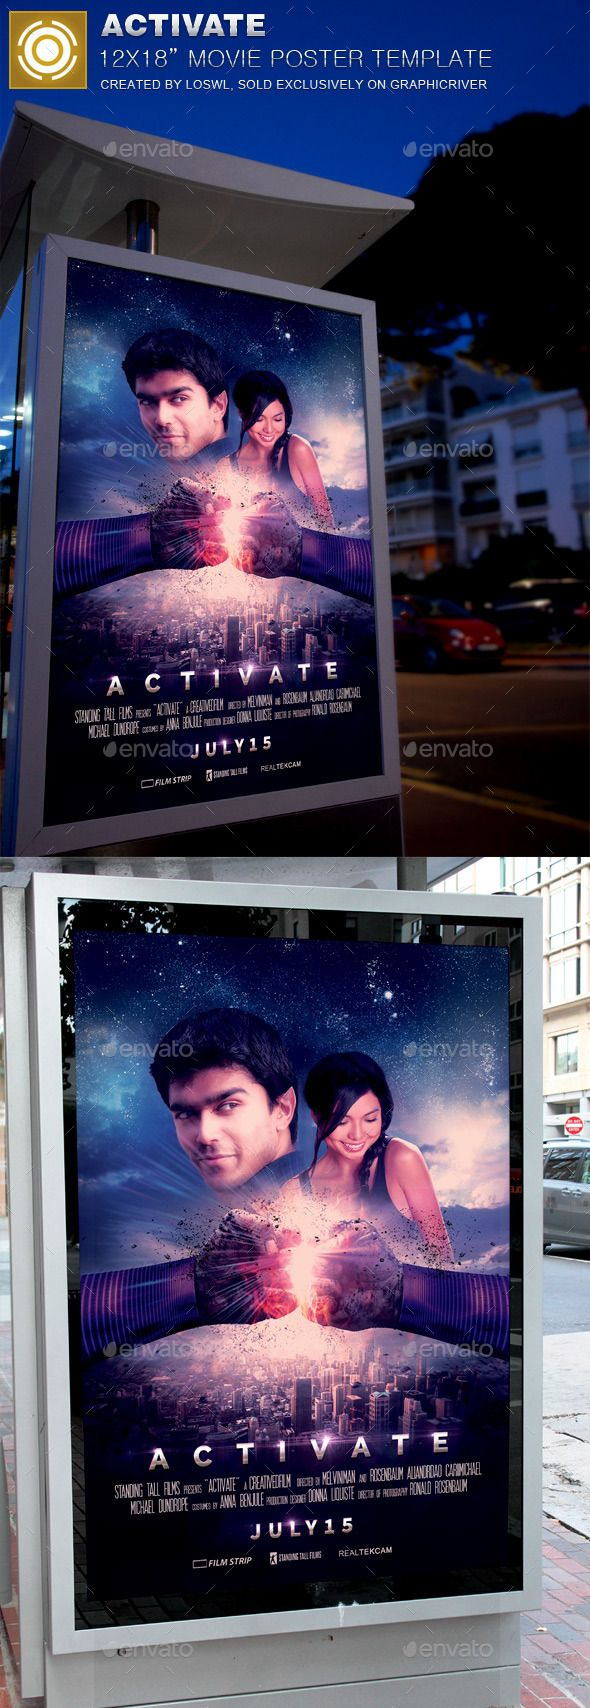 Activate Movie Poster Template is sold exclusively on graphicriver,?it can be usedfor your movie promotion, event marketing, etc. In this package you¡¯ll find 1Photoshop file. All text and graphics in the file are editable, color coded andsimple to edit. The fi